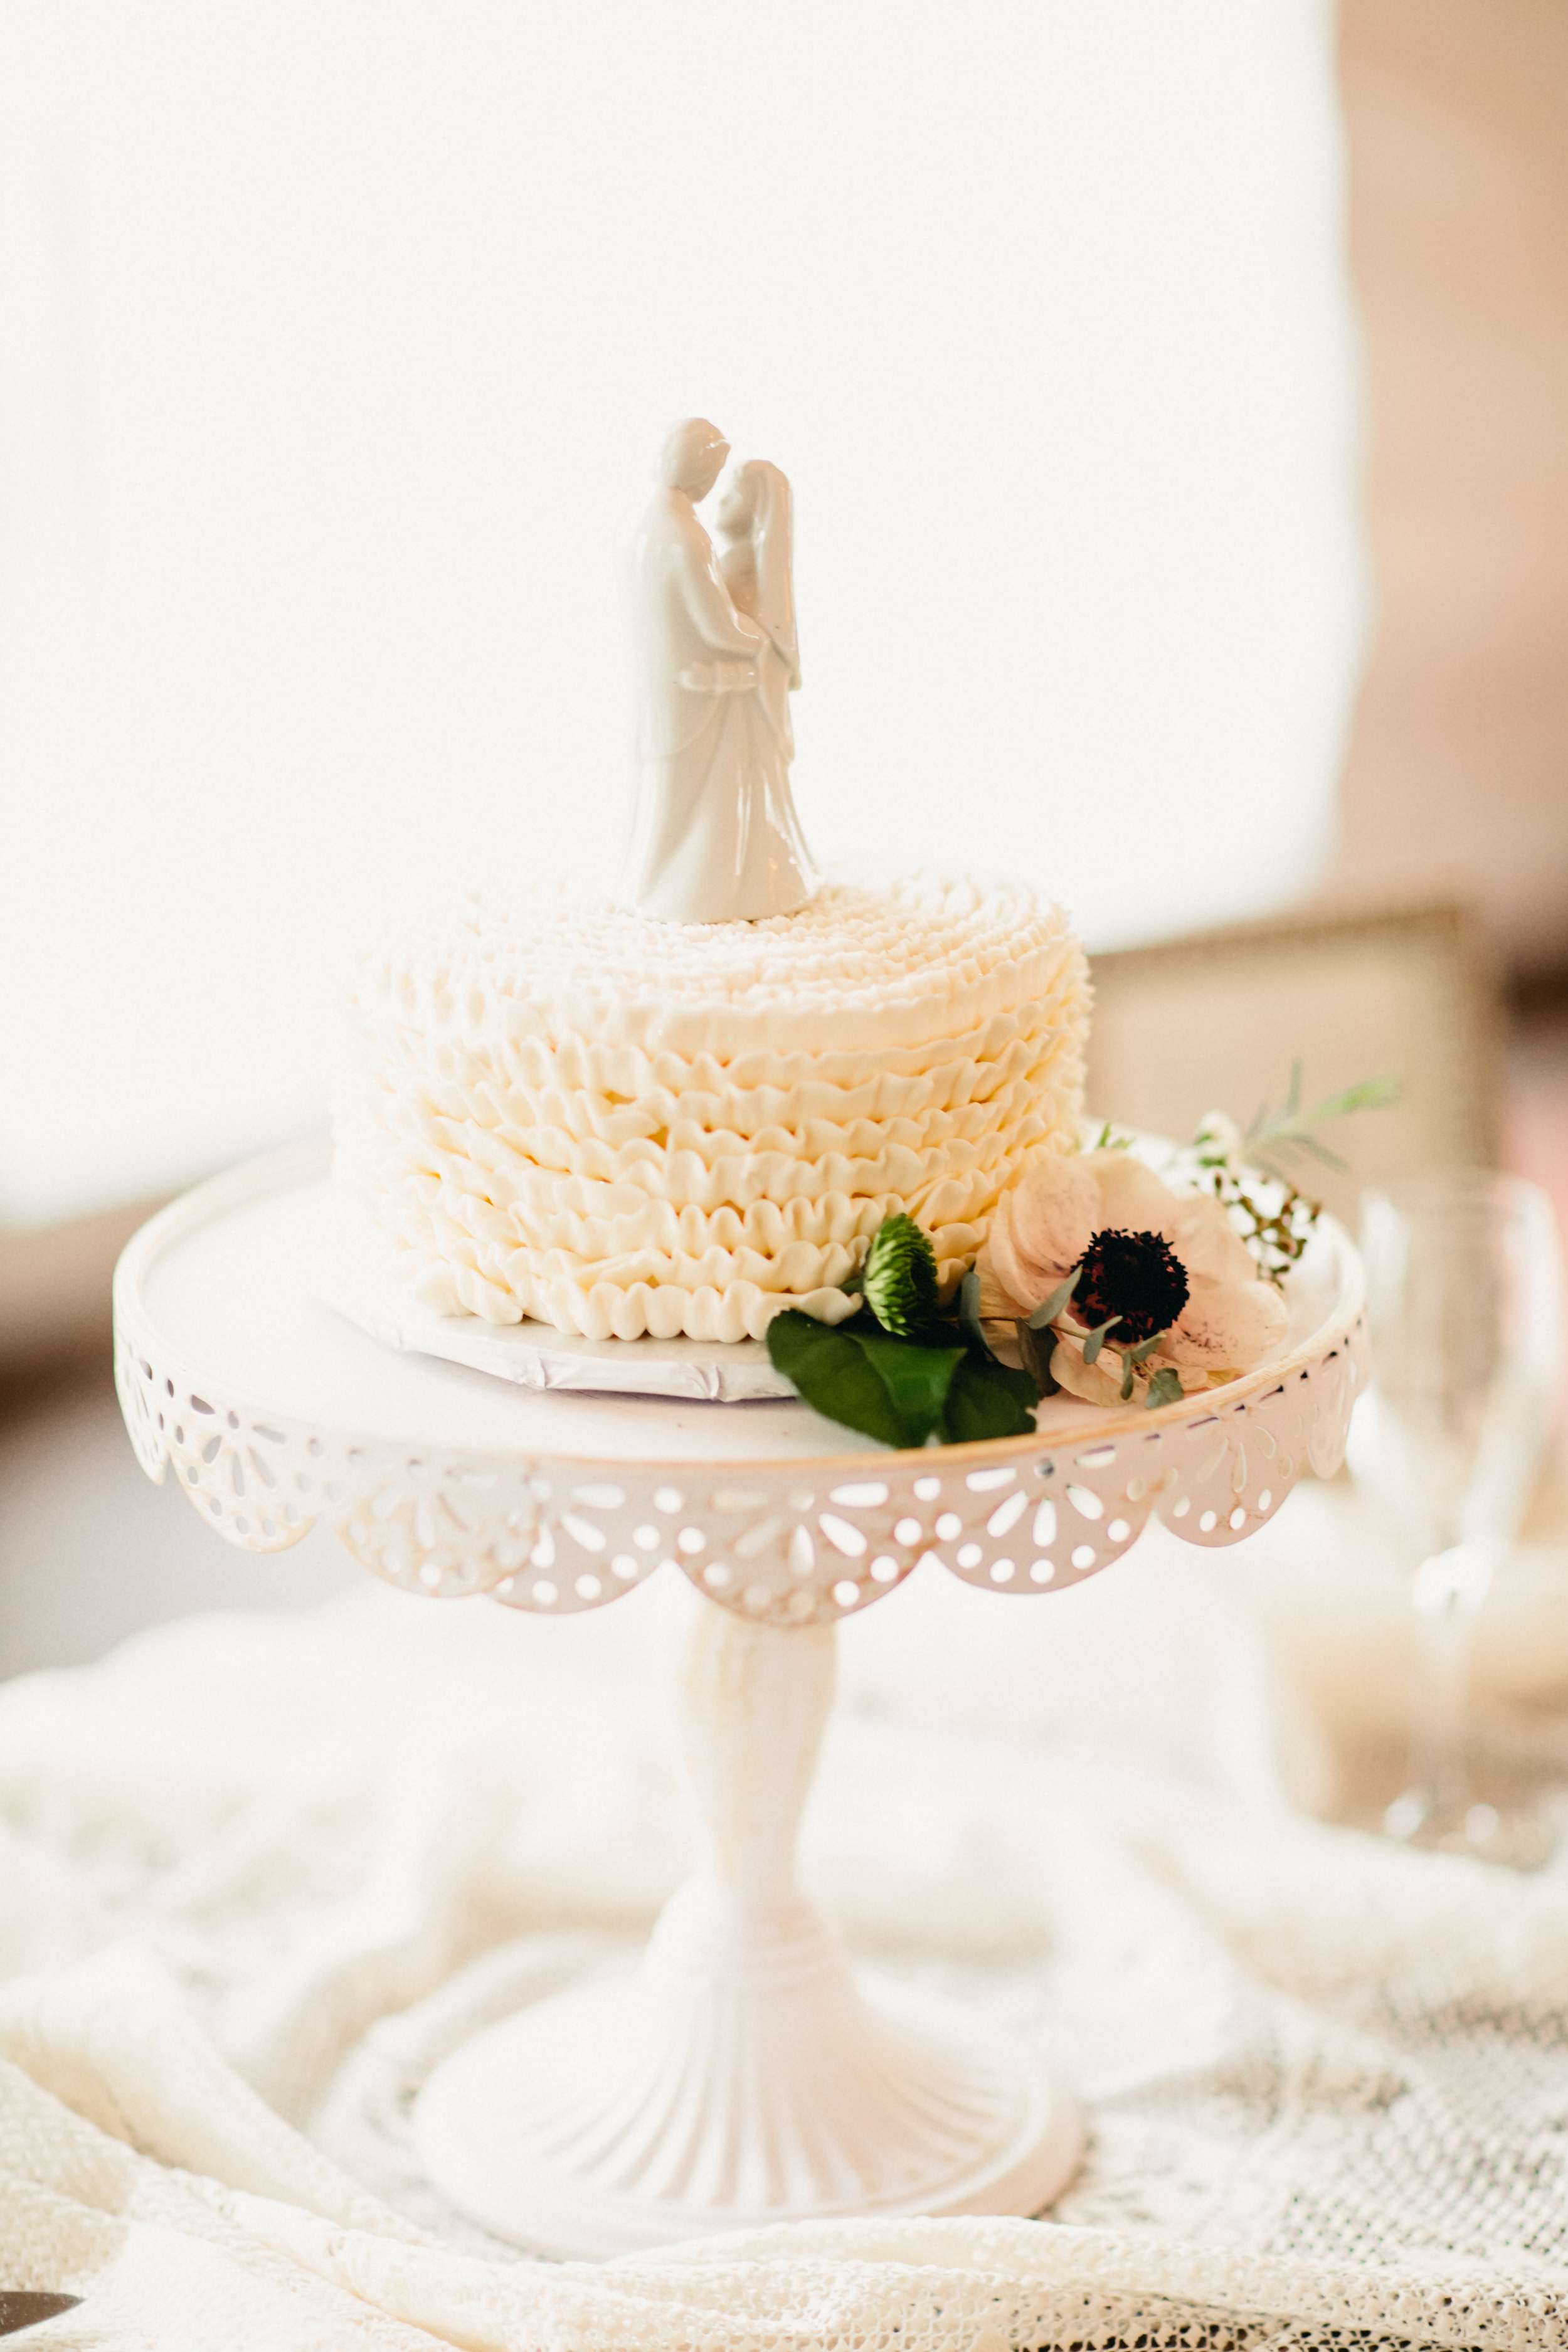 A wedding cake doesn't need to be sky-high! A single-tier ruffled cake is ideal for elopements,smaller wedding receptions,or couples wanting a designer cake for a fraction of the cost.   Photo: Anderson Shore Photography